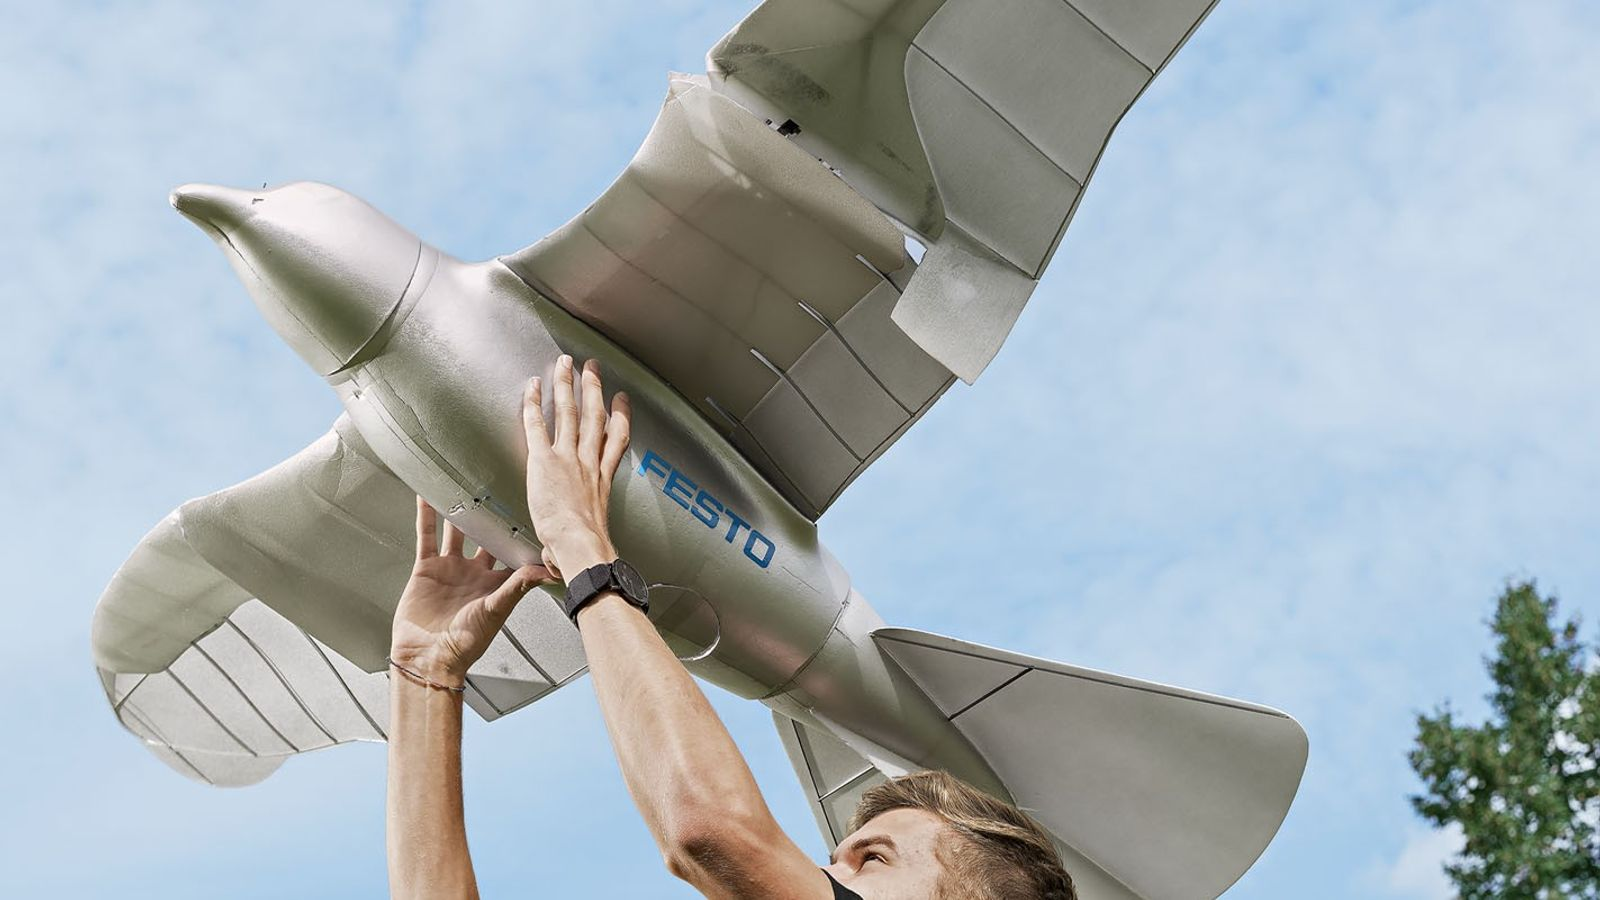 The SmartBird, an ornithopter created by the company Festo, flies so well because it twists its ...